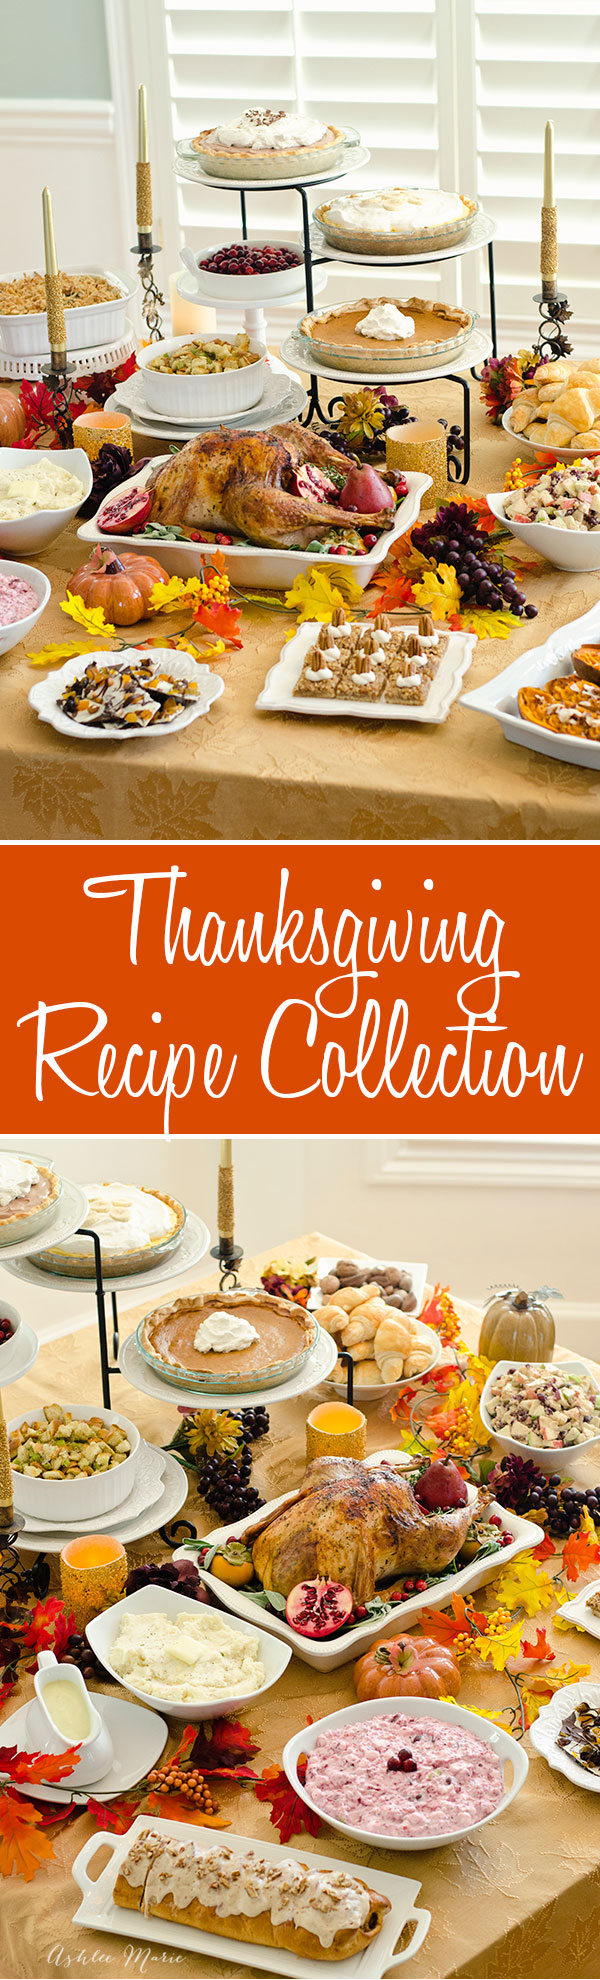 Collection of Thanksgiving recipes from some of your favorite bloggers